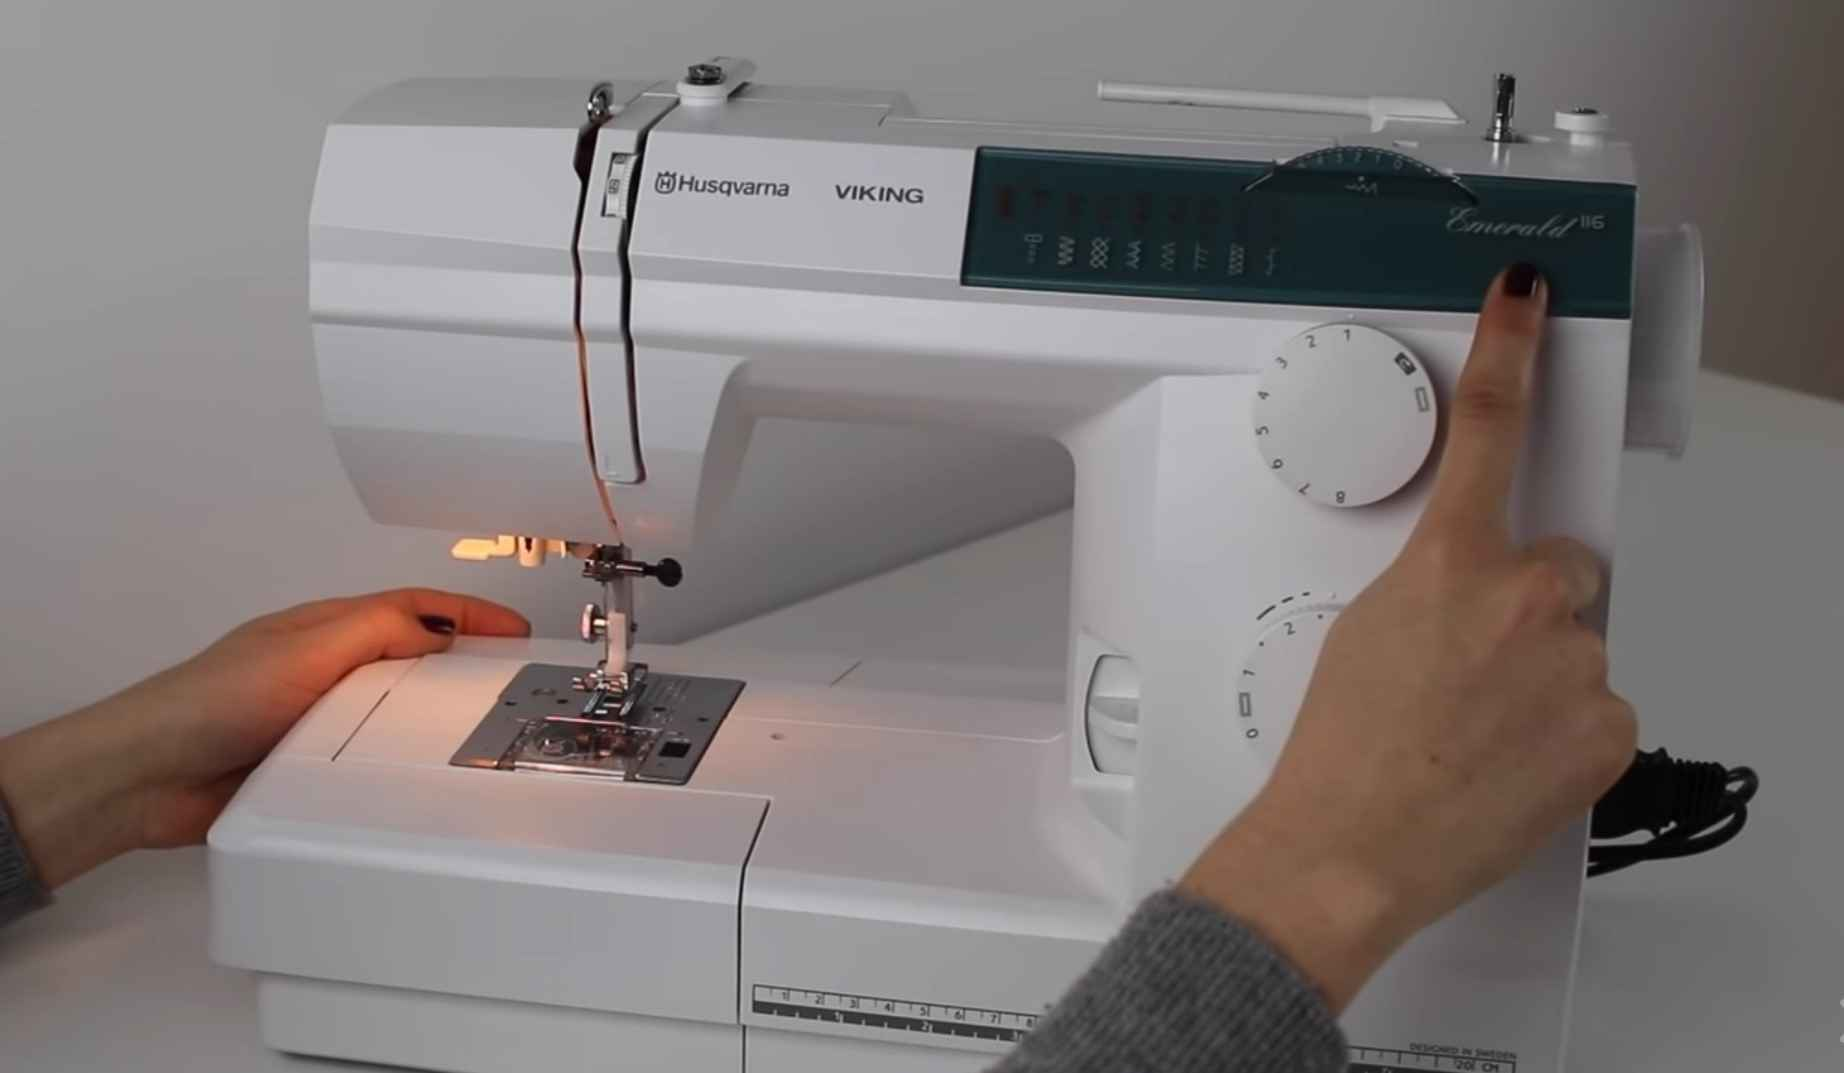 Sewing the machine